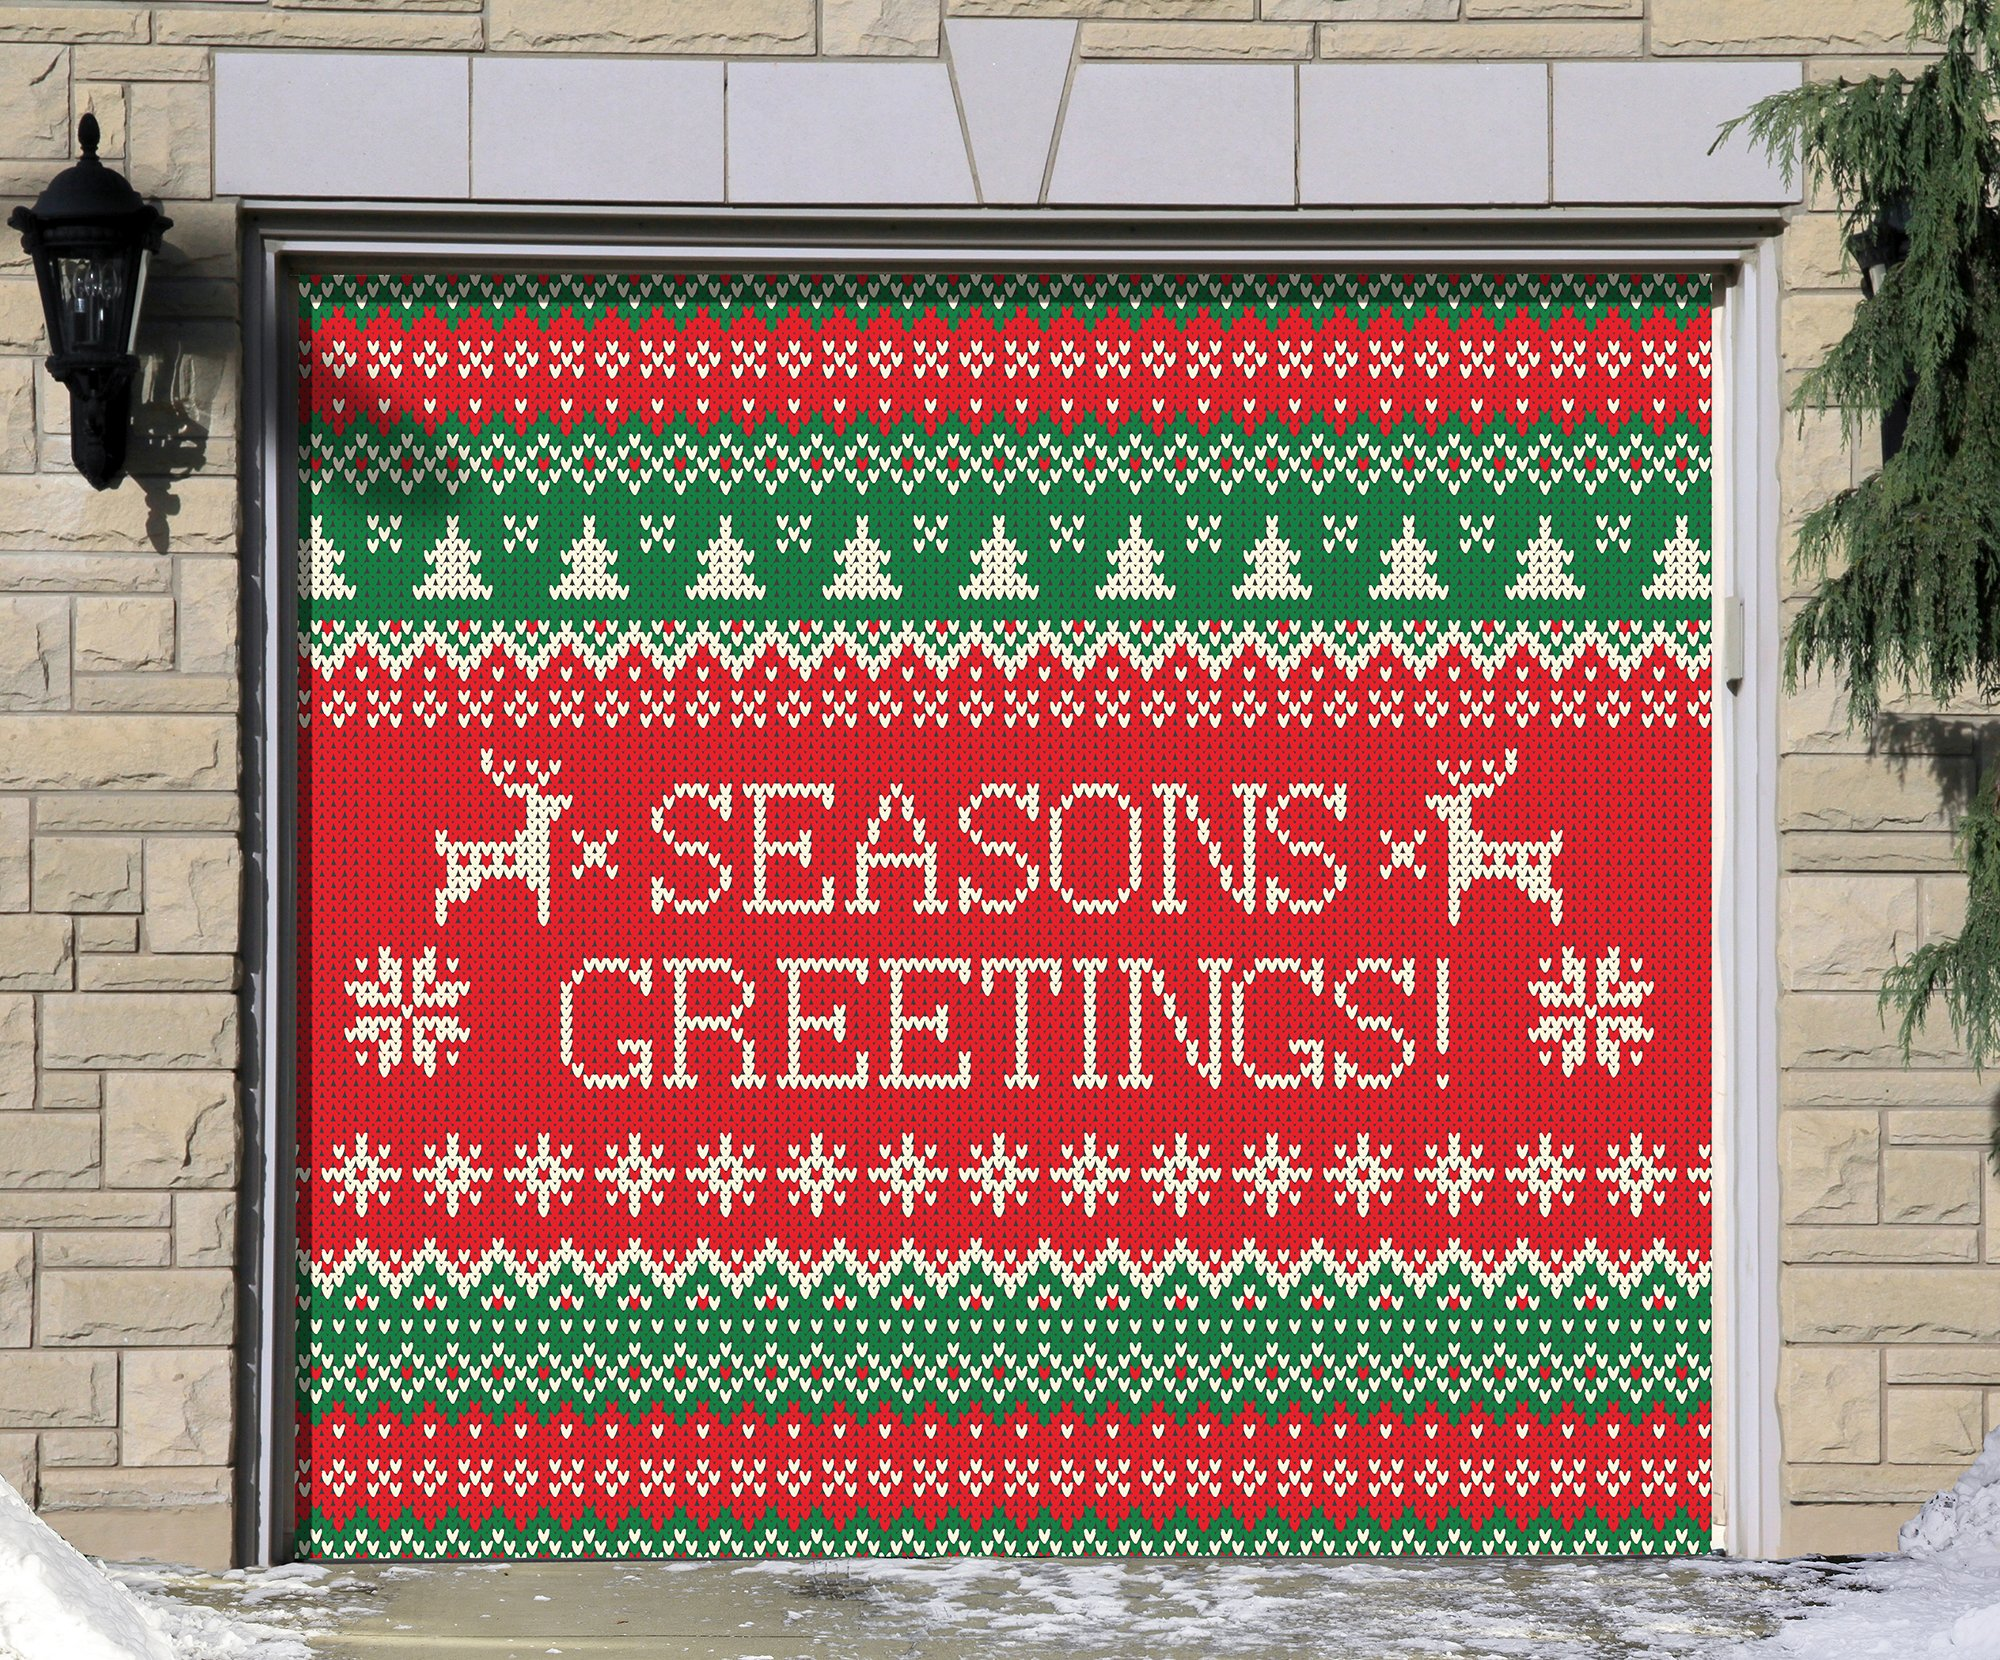 Outdoor Christmas Holiday Garage Door Banner Cover Mural Décoration - Ugly Christmas Sweater Seasons Greetings - Outdoor Christmas Holiday Garage Door Banner Décor Sign 7'x8' by Victory Corps